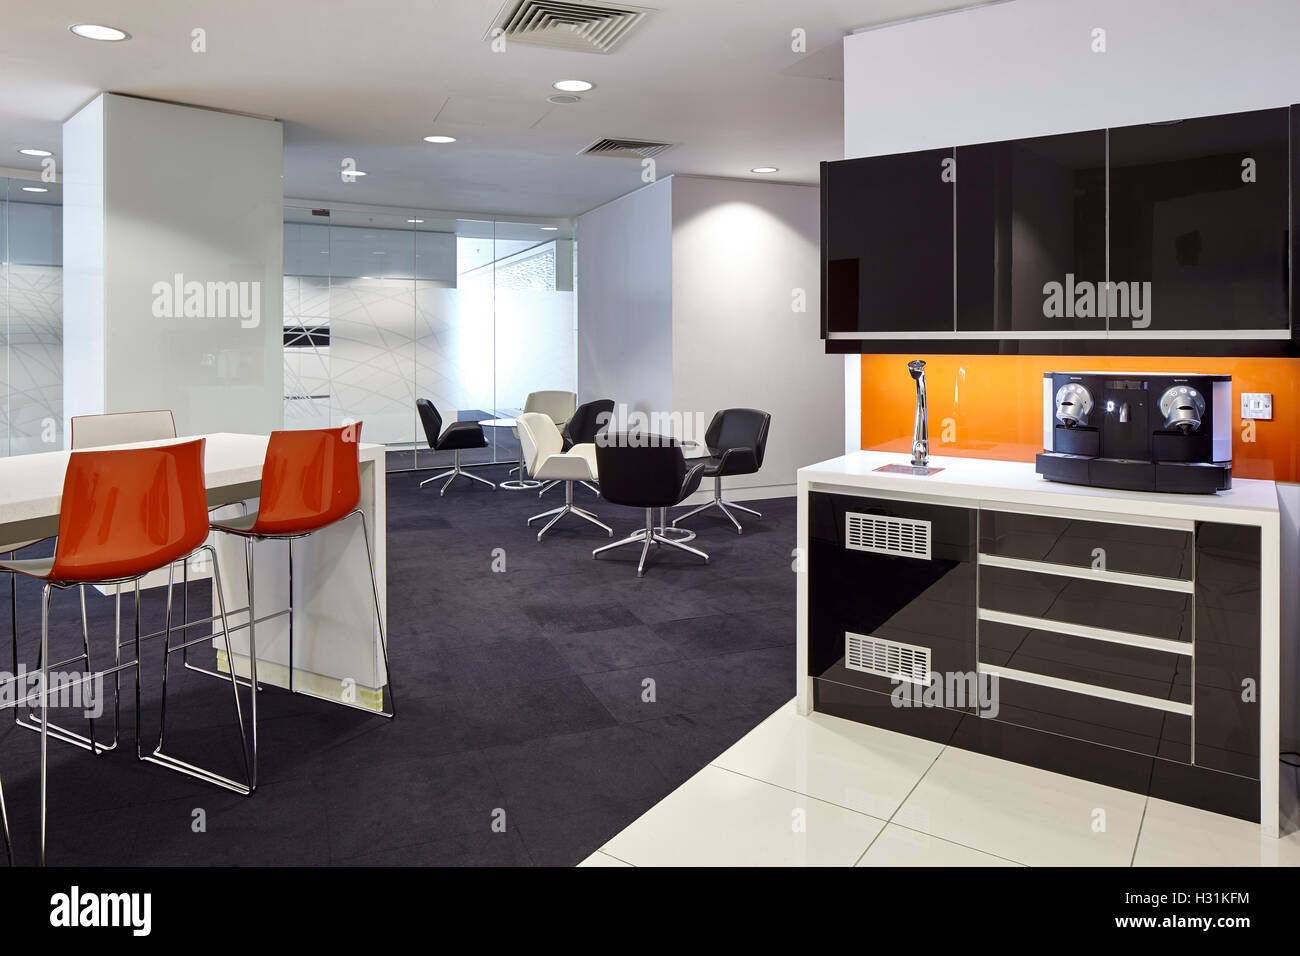 breakout area and tea point with orange detailing office space at